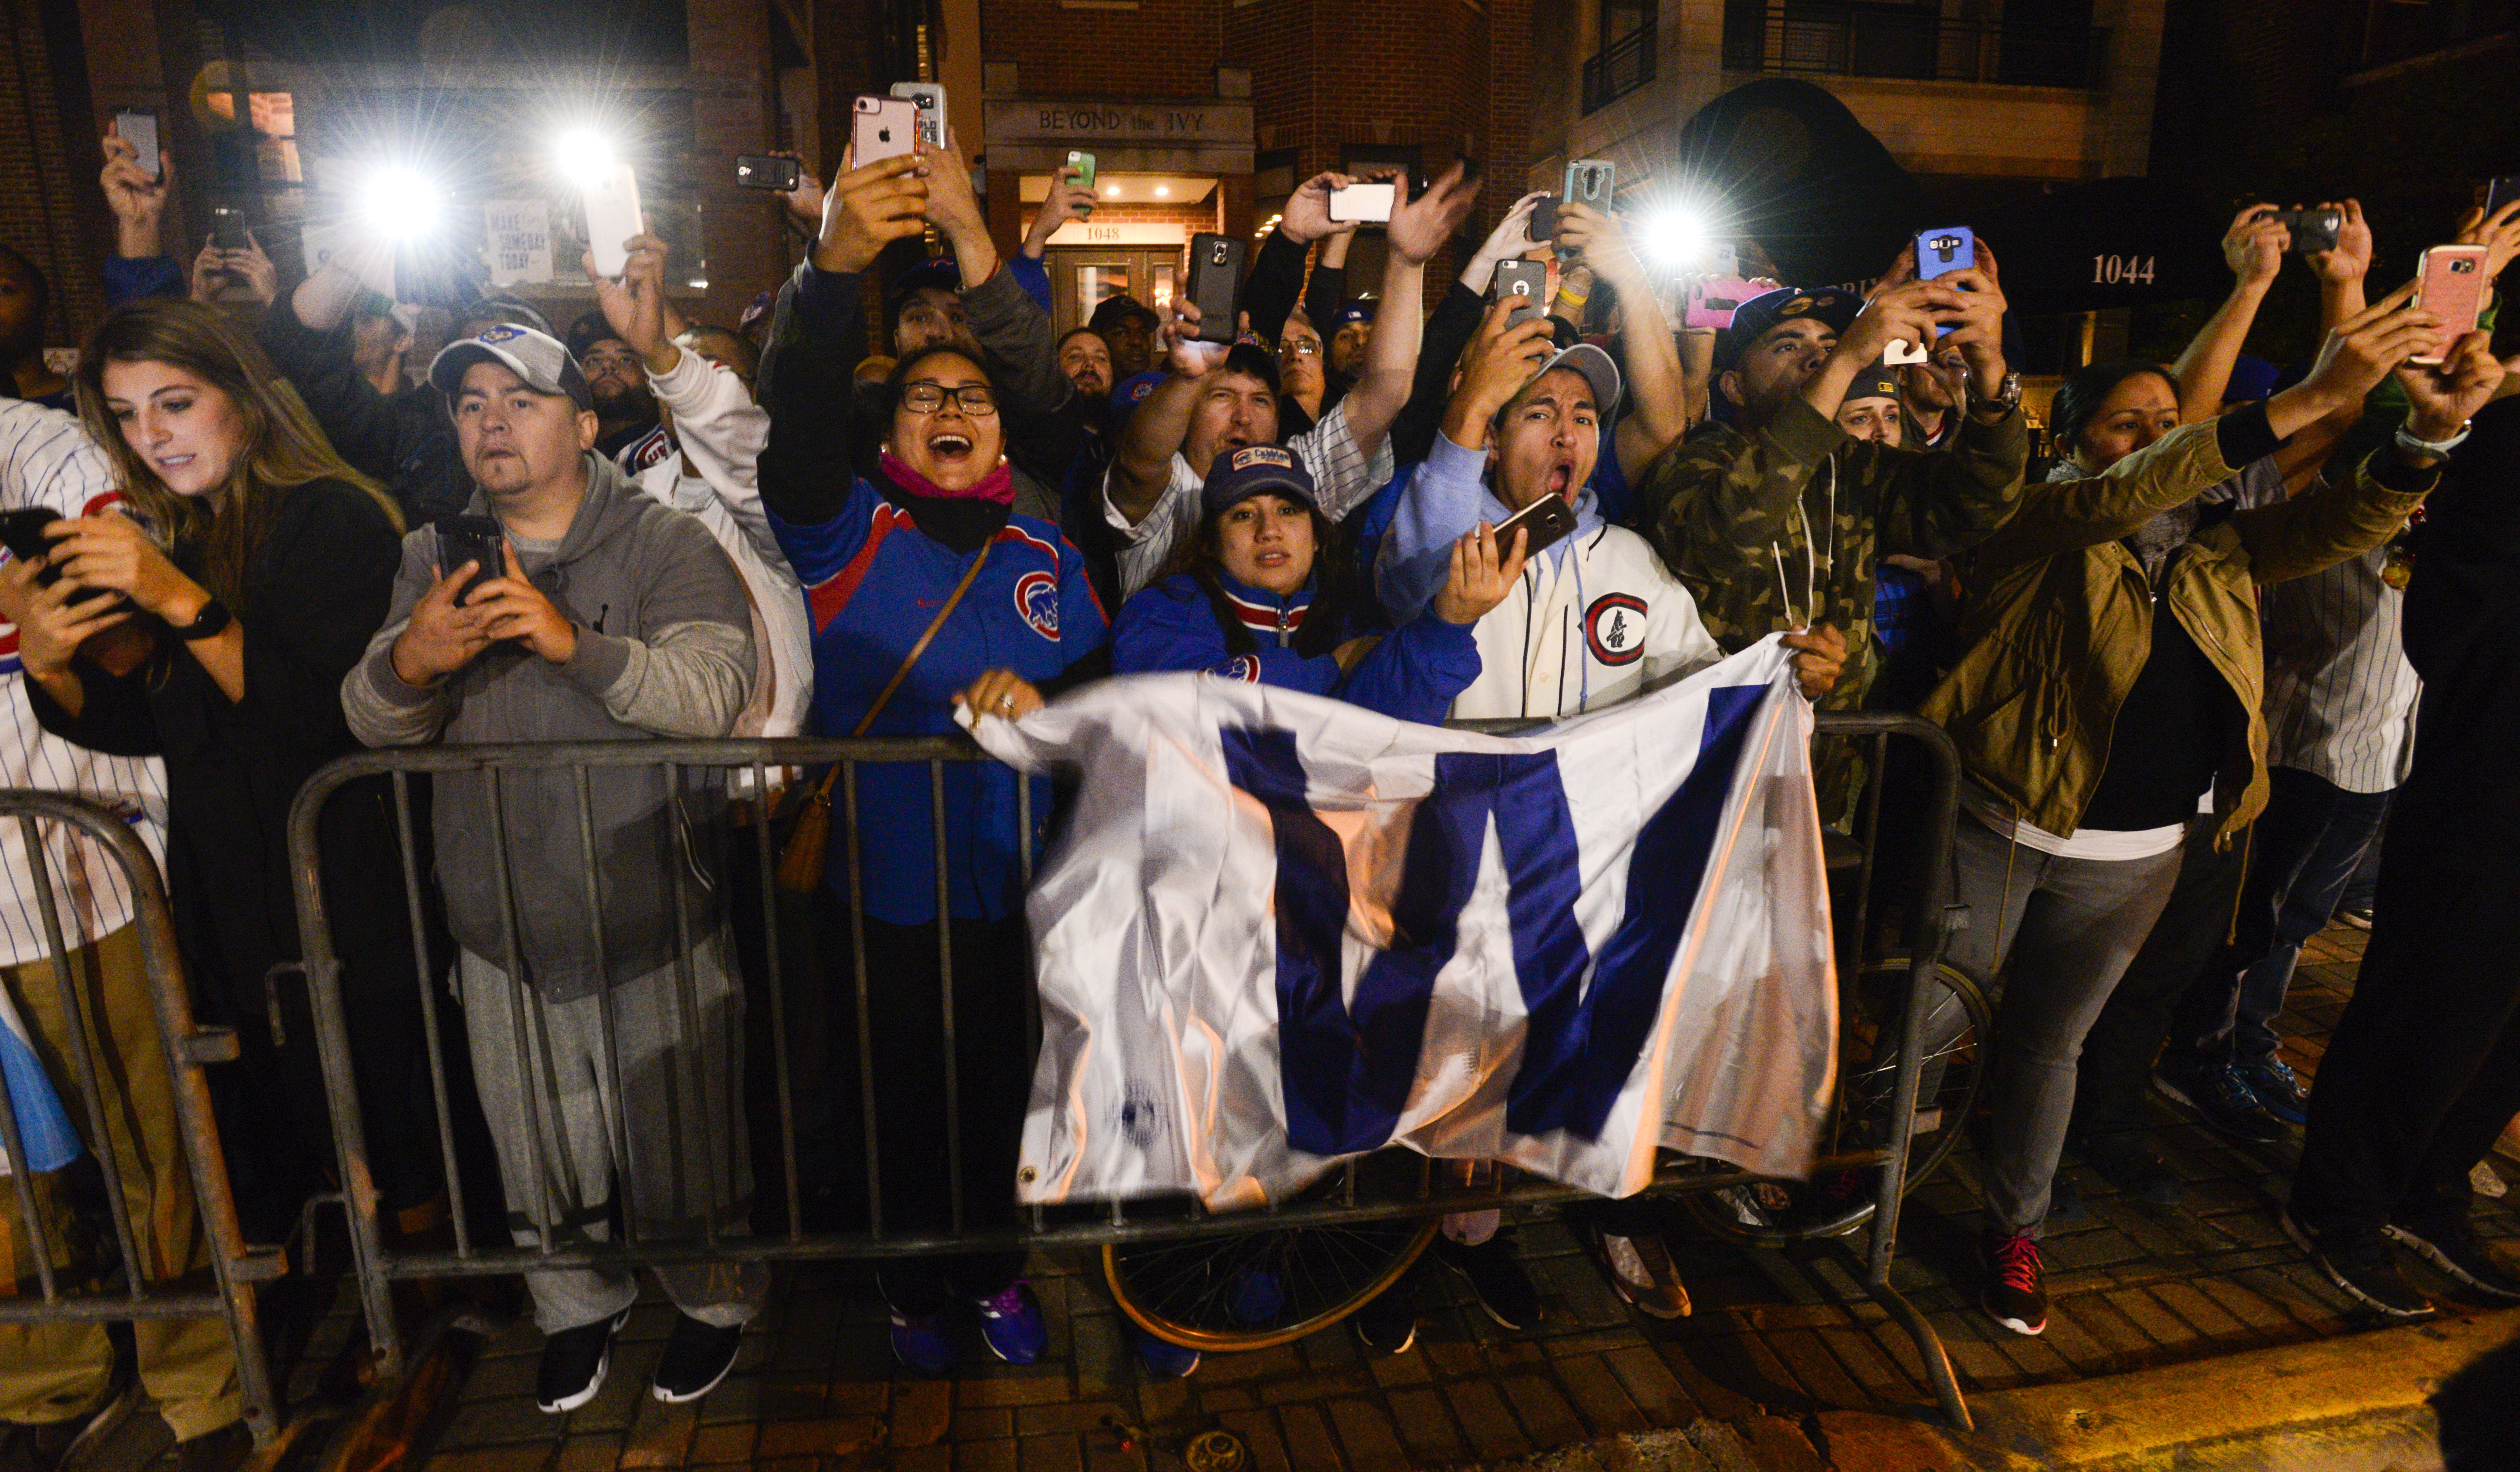 Fans celebrate outside Wrigley Field as buses carrying the Chicago Cubs baseball team arrive in Chicago early Thursday, Nov. 3, 2016, after the Cubs defeated the Cleveland Indians 8-7 in Game 7 of the World Series in Cleveland. (AP Photo/Matt Marton)